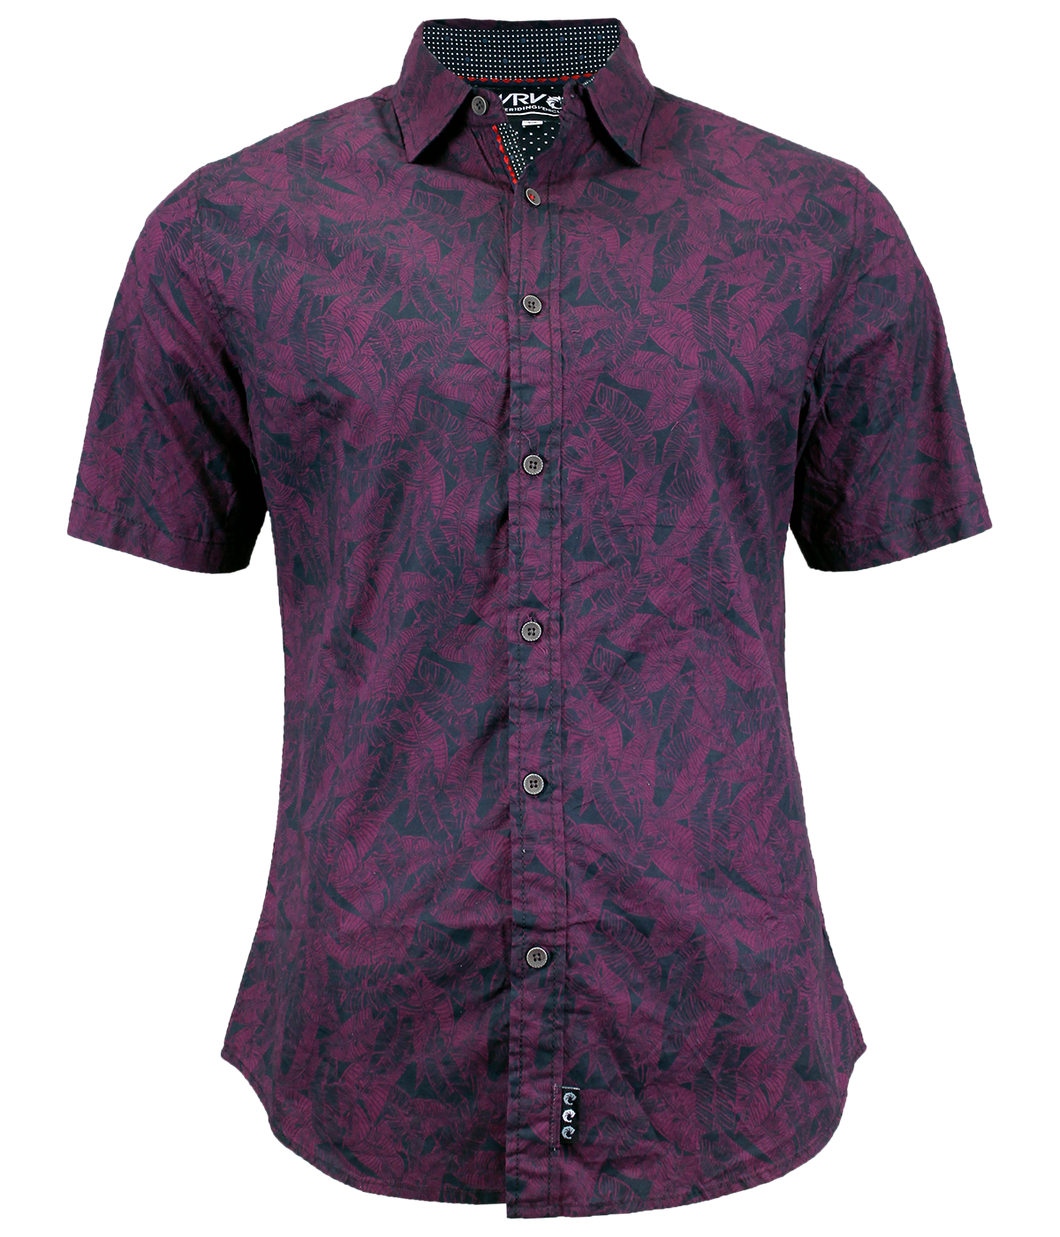 Umbra S/S Button Up